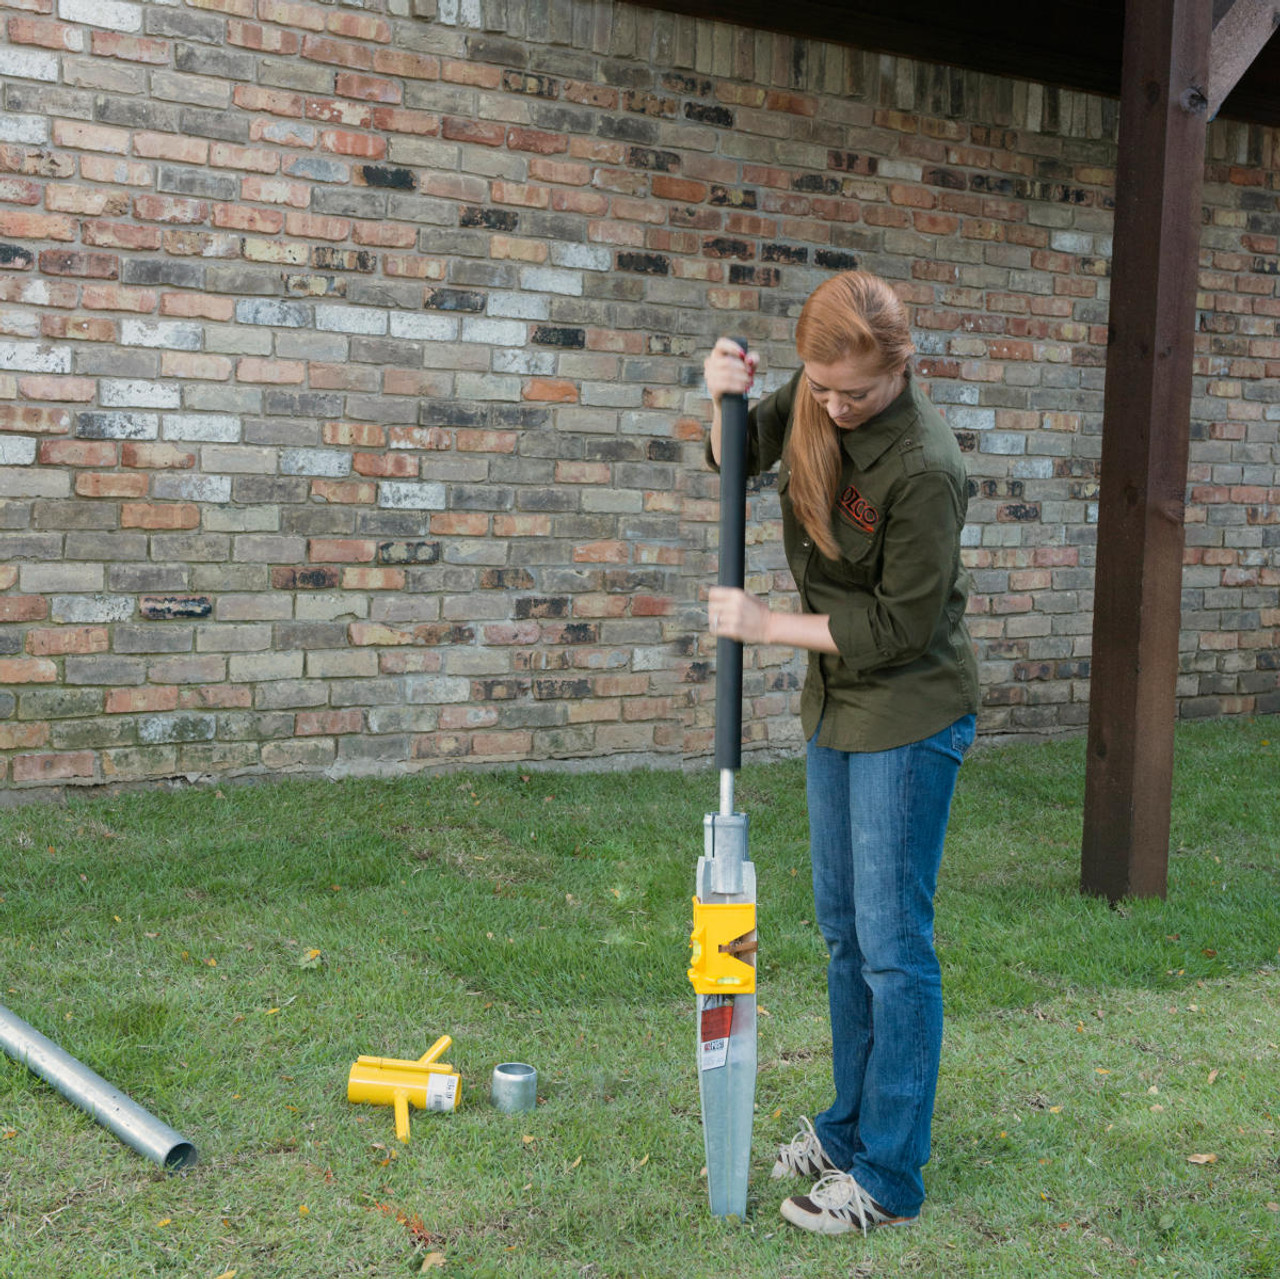 Installing an ISW-850 Post Anchor with the Manual Driving Kit (MDK-13)